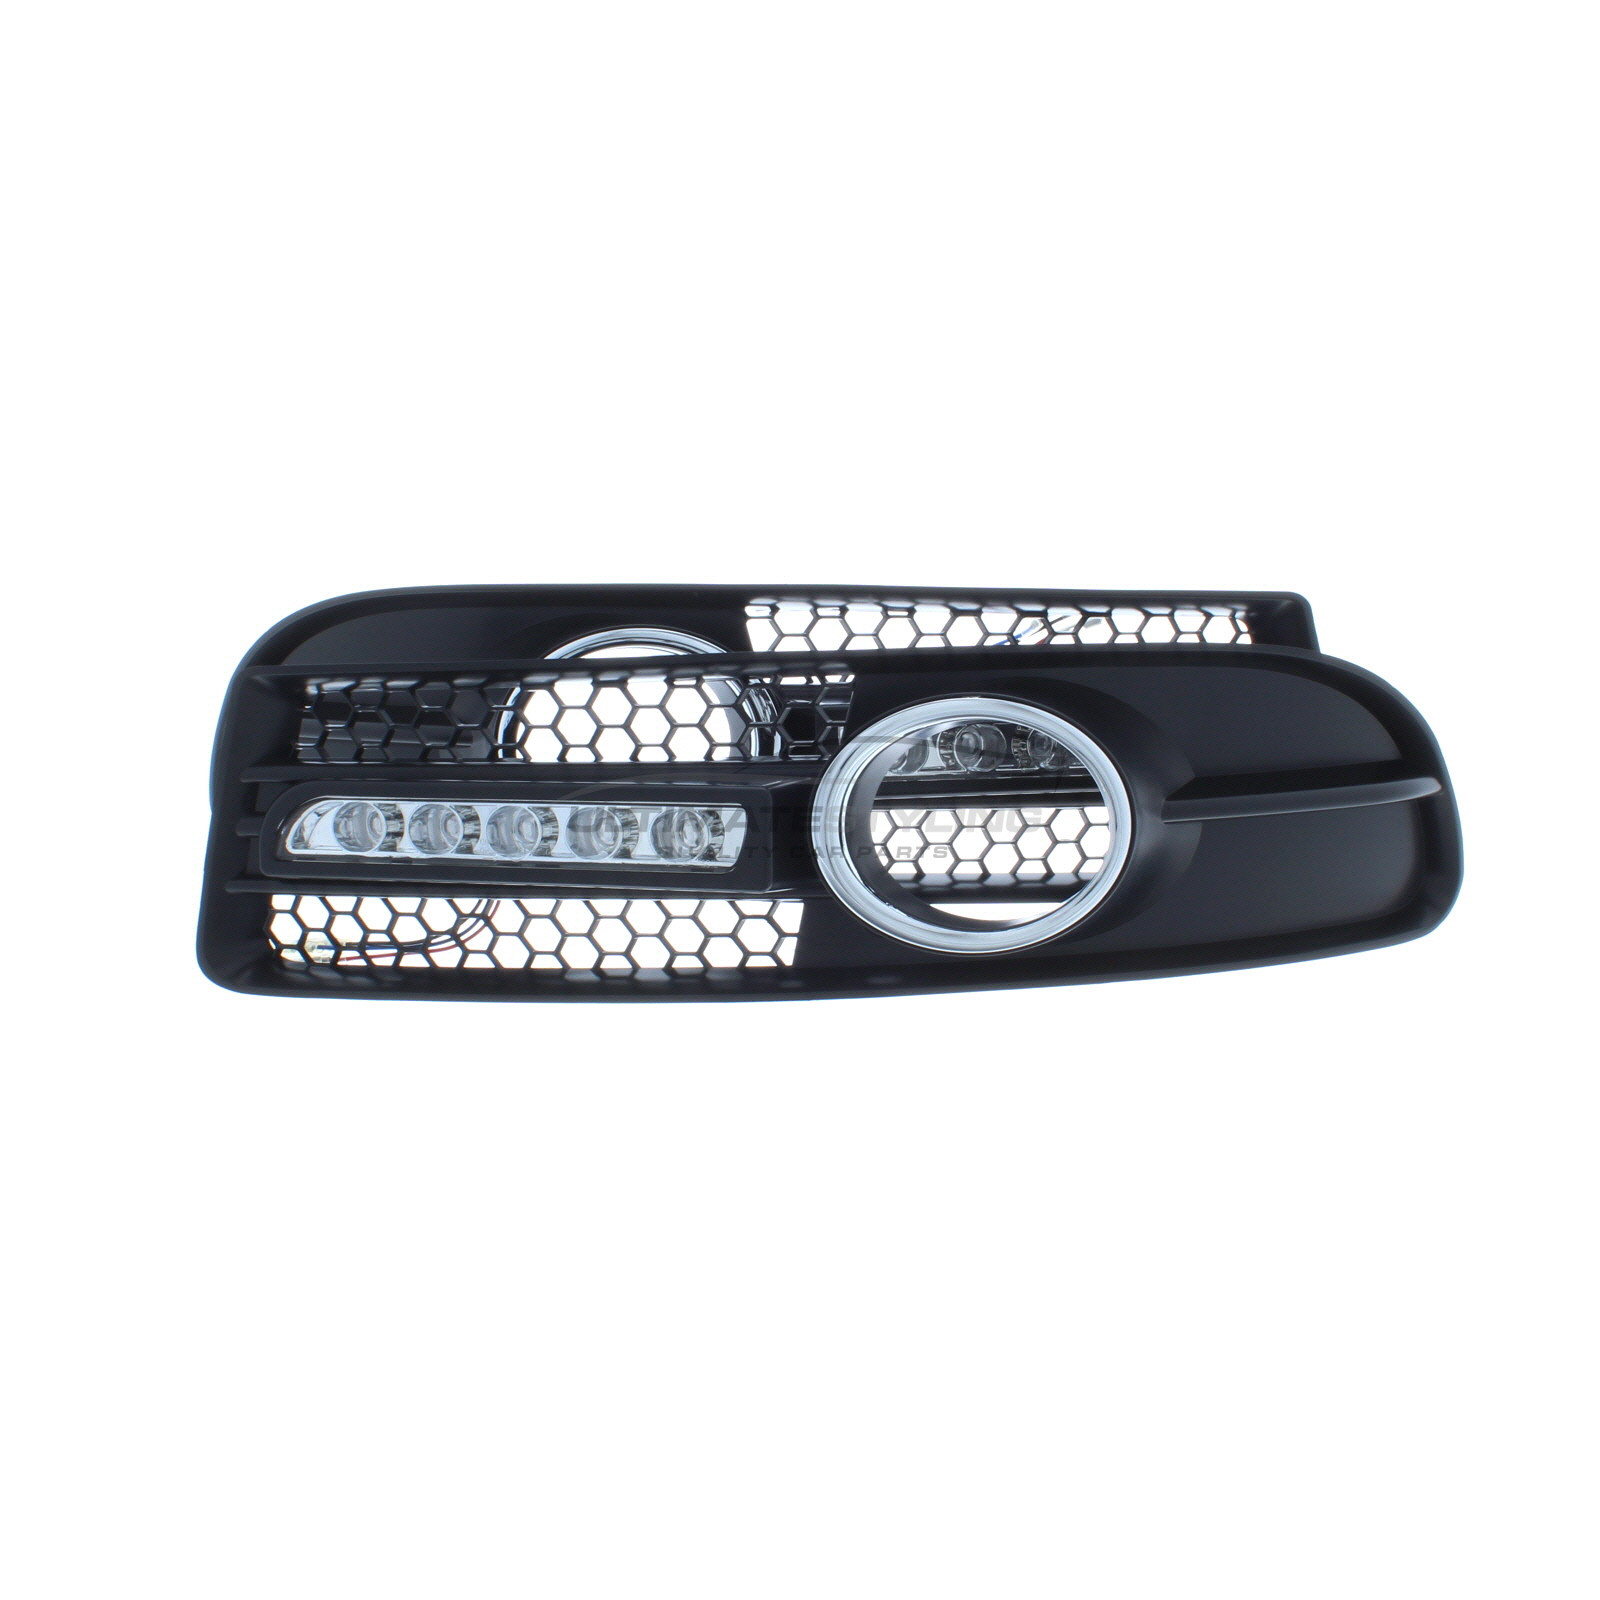 Performance Daytime Running Lights (DRL) for Audi A4